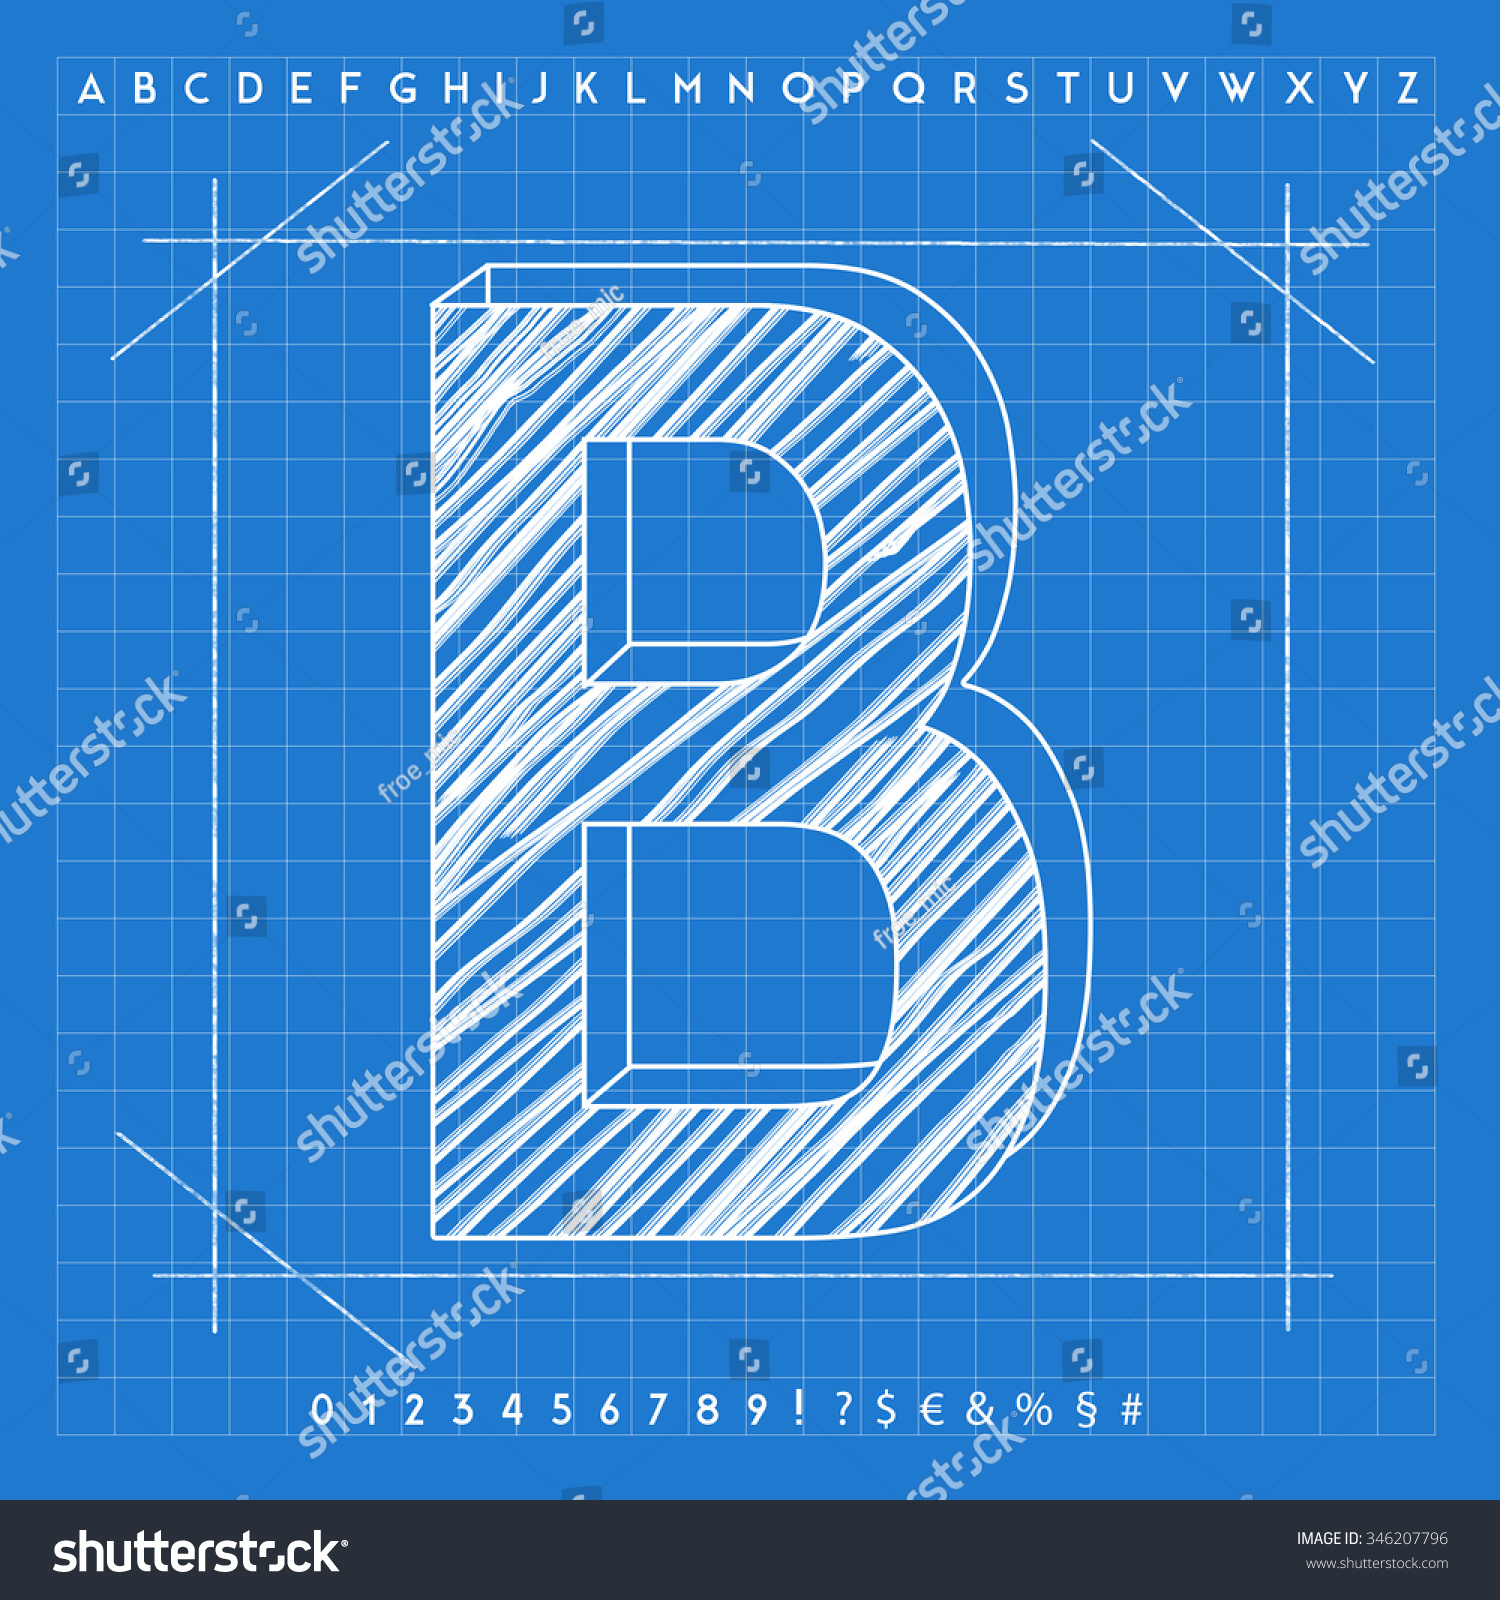 High quality 3 d blueprint font letter stock illustration 346207796 high quality 3d blueprint font letter b malvernweather Gallery